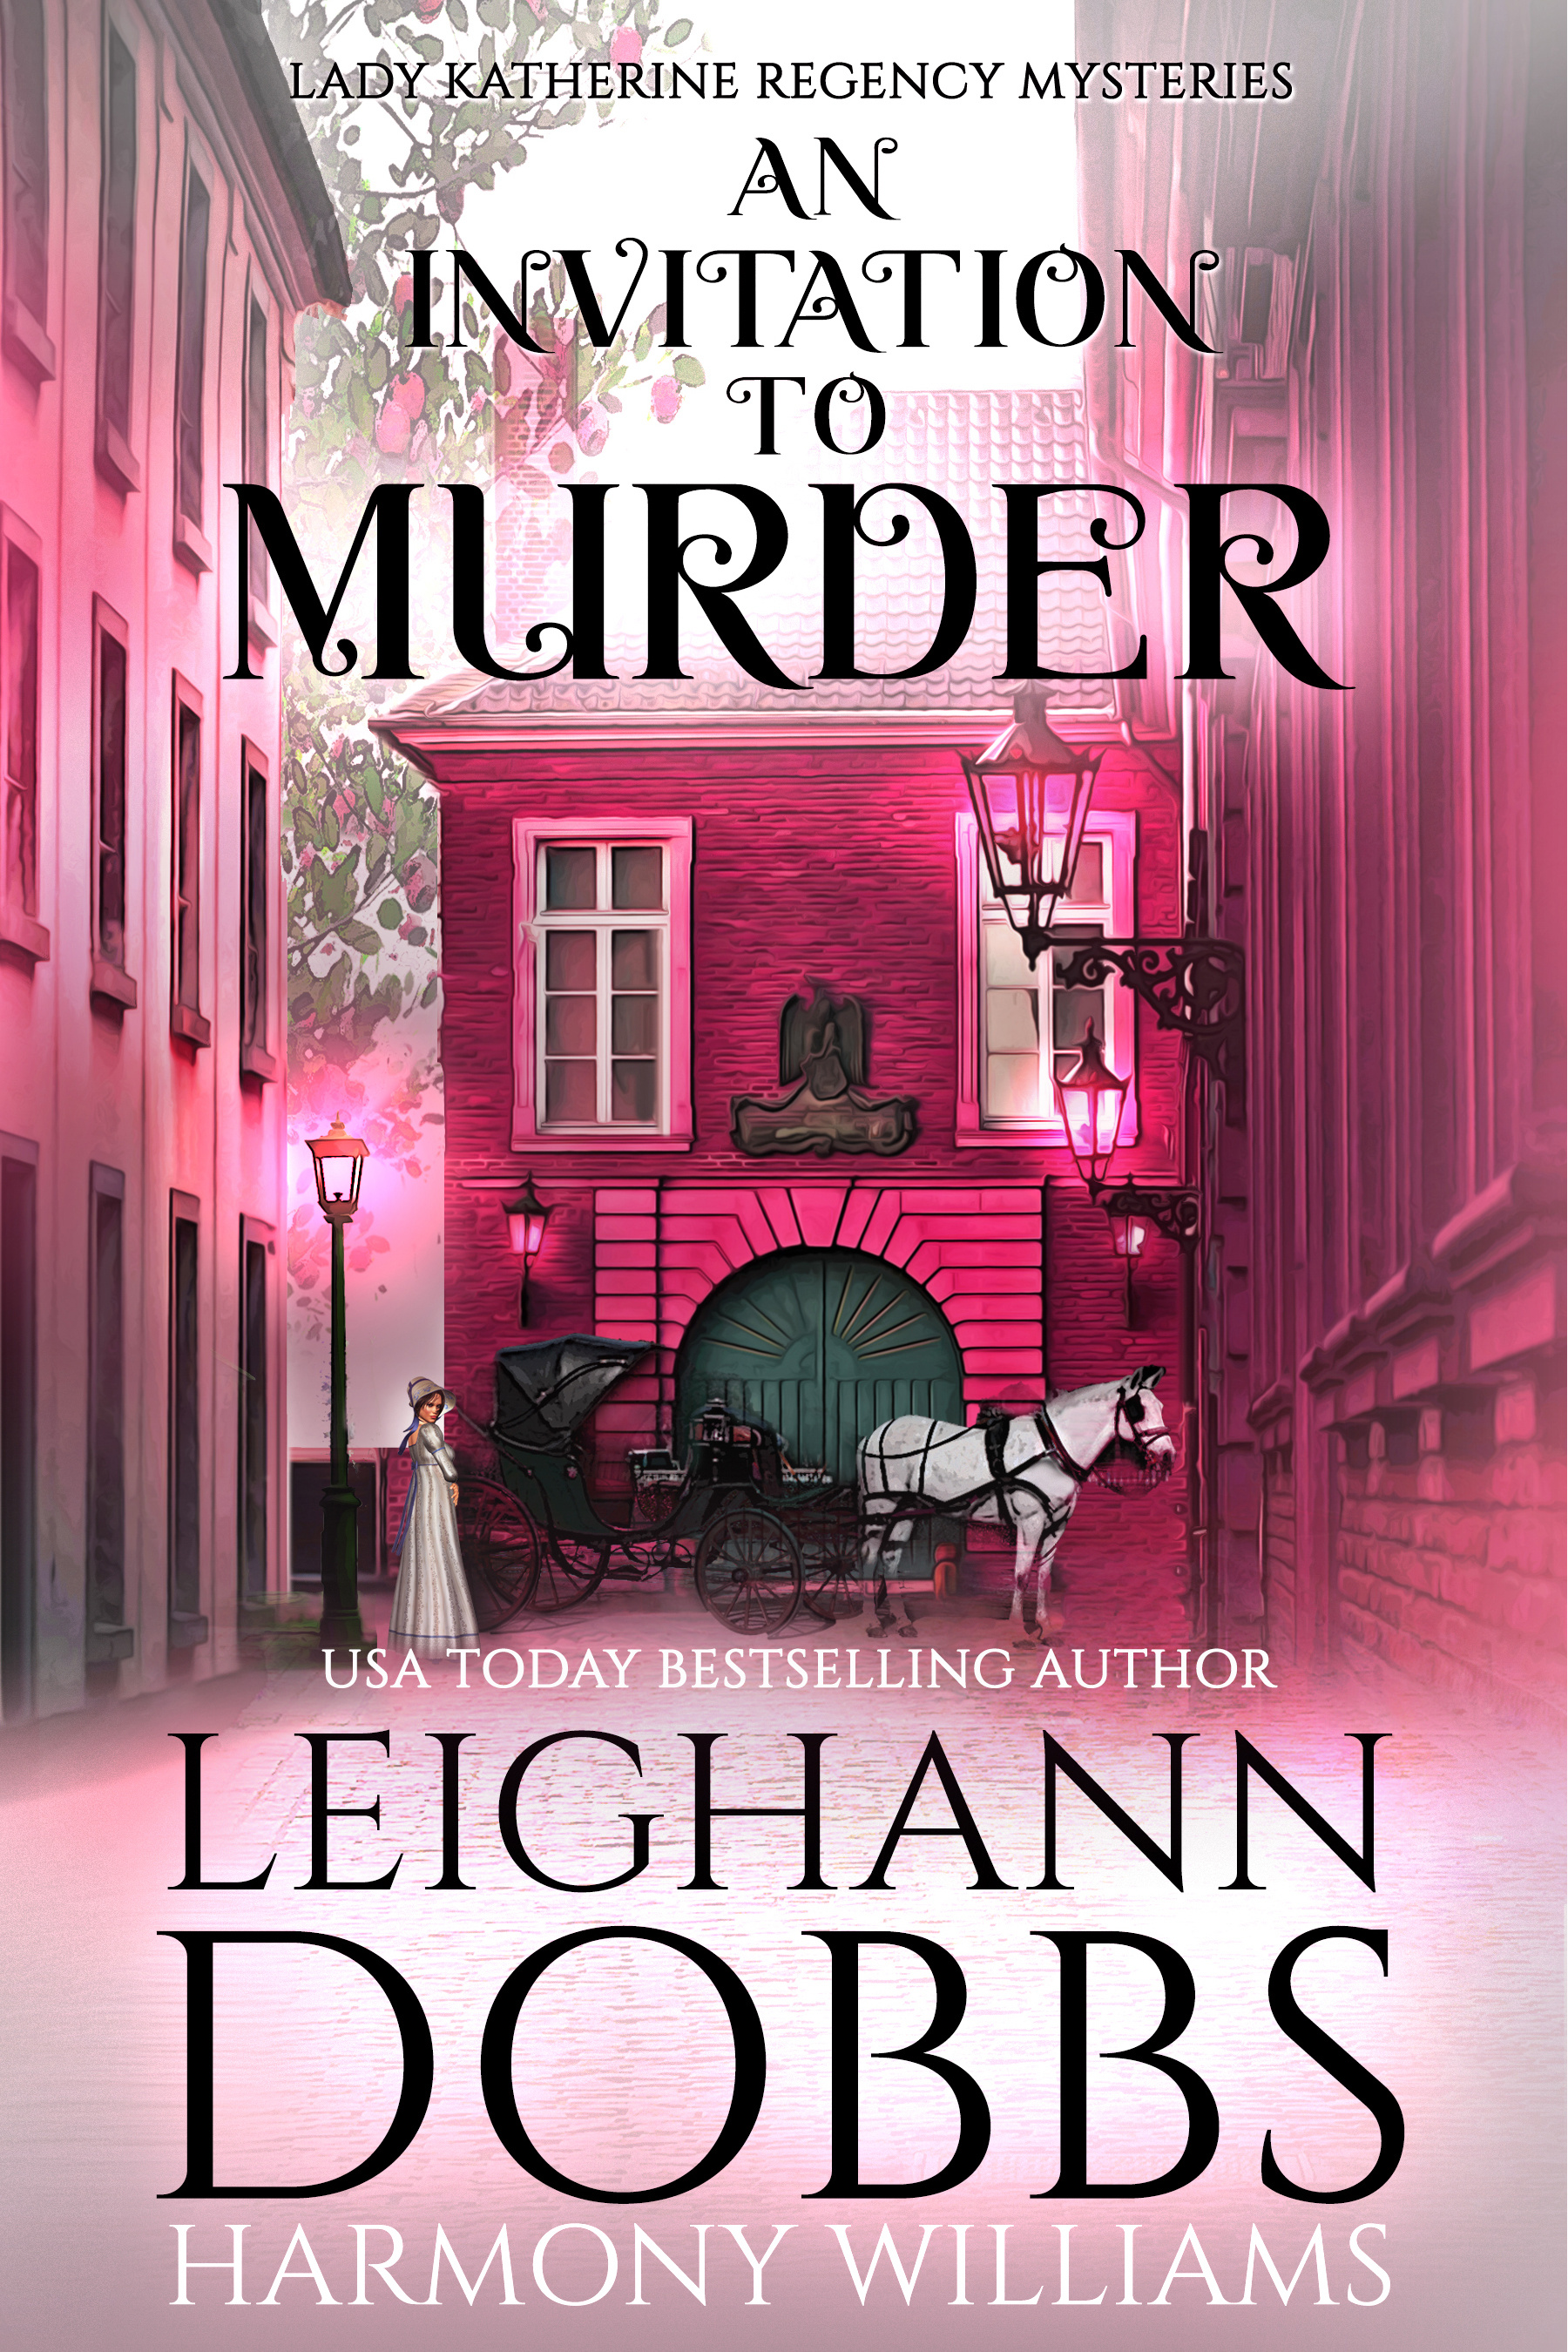 New release an invitation to murder lady katherine regency historical cozy mystery novel lady katherine regency mysteries book 1 stopboris Gallery